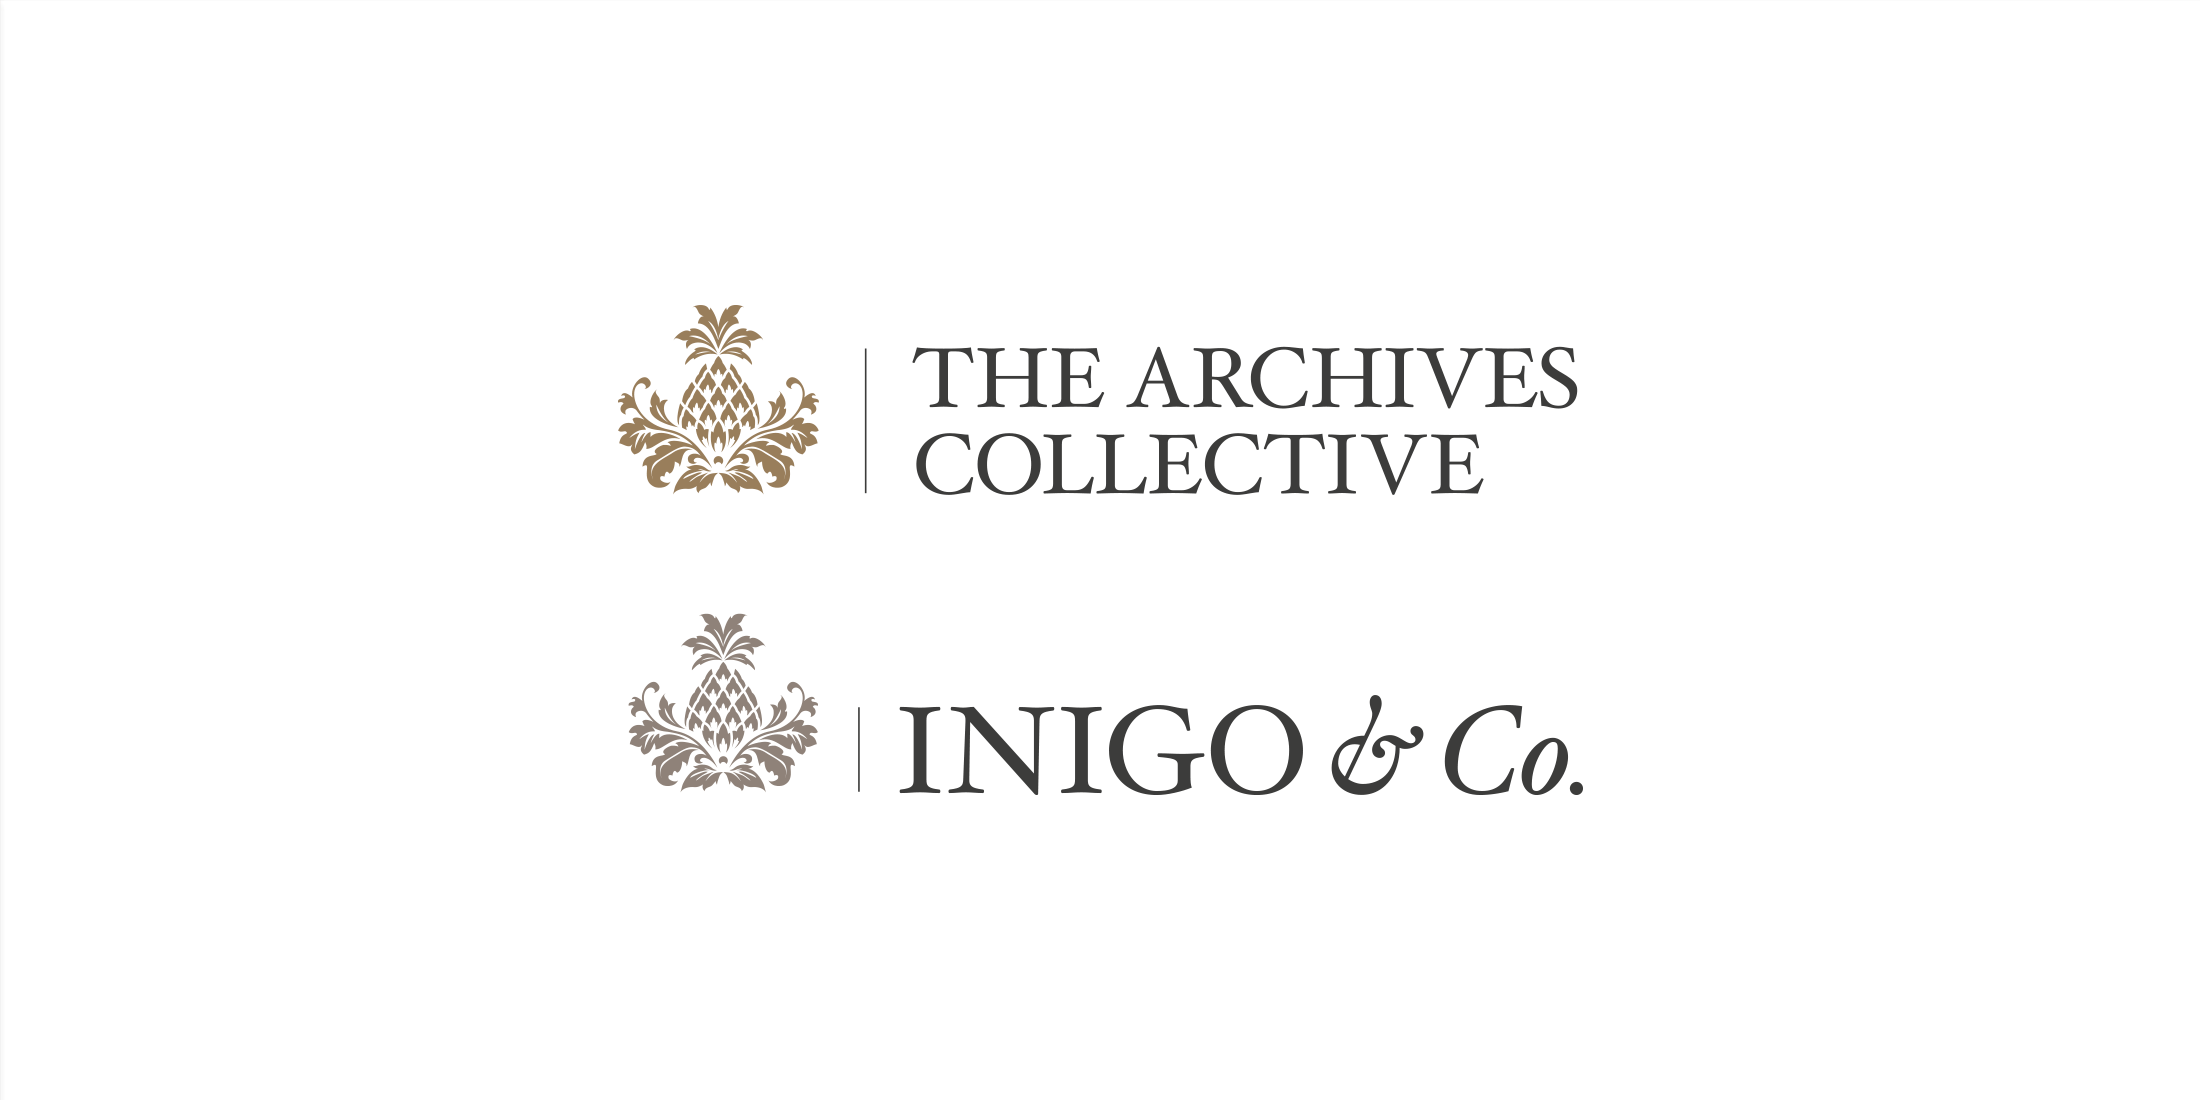 Logos for The Archives Collective and Inigo & Co.